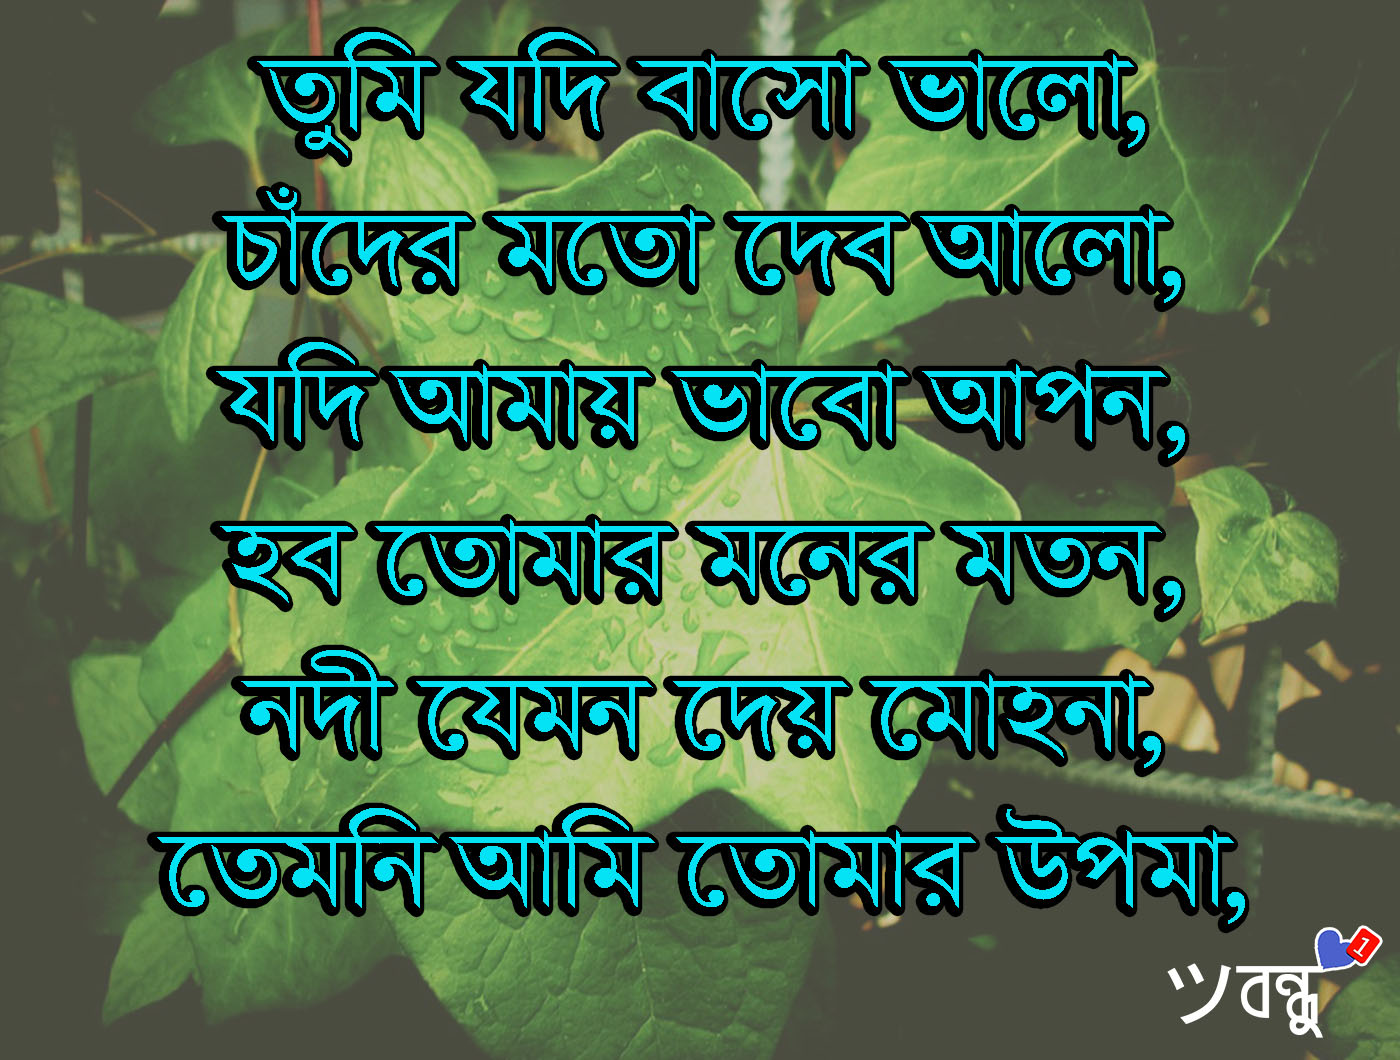 Love Sms Wallpaper Bangla : Bangla Romantic Love Sms Messages Bondhu2u - BONDHU2U SMS